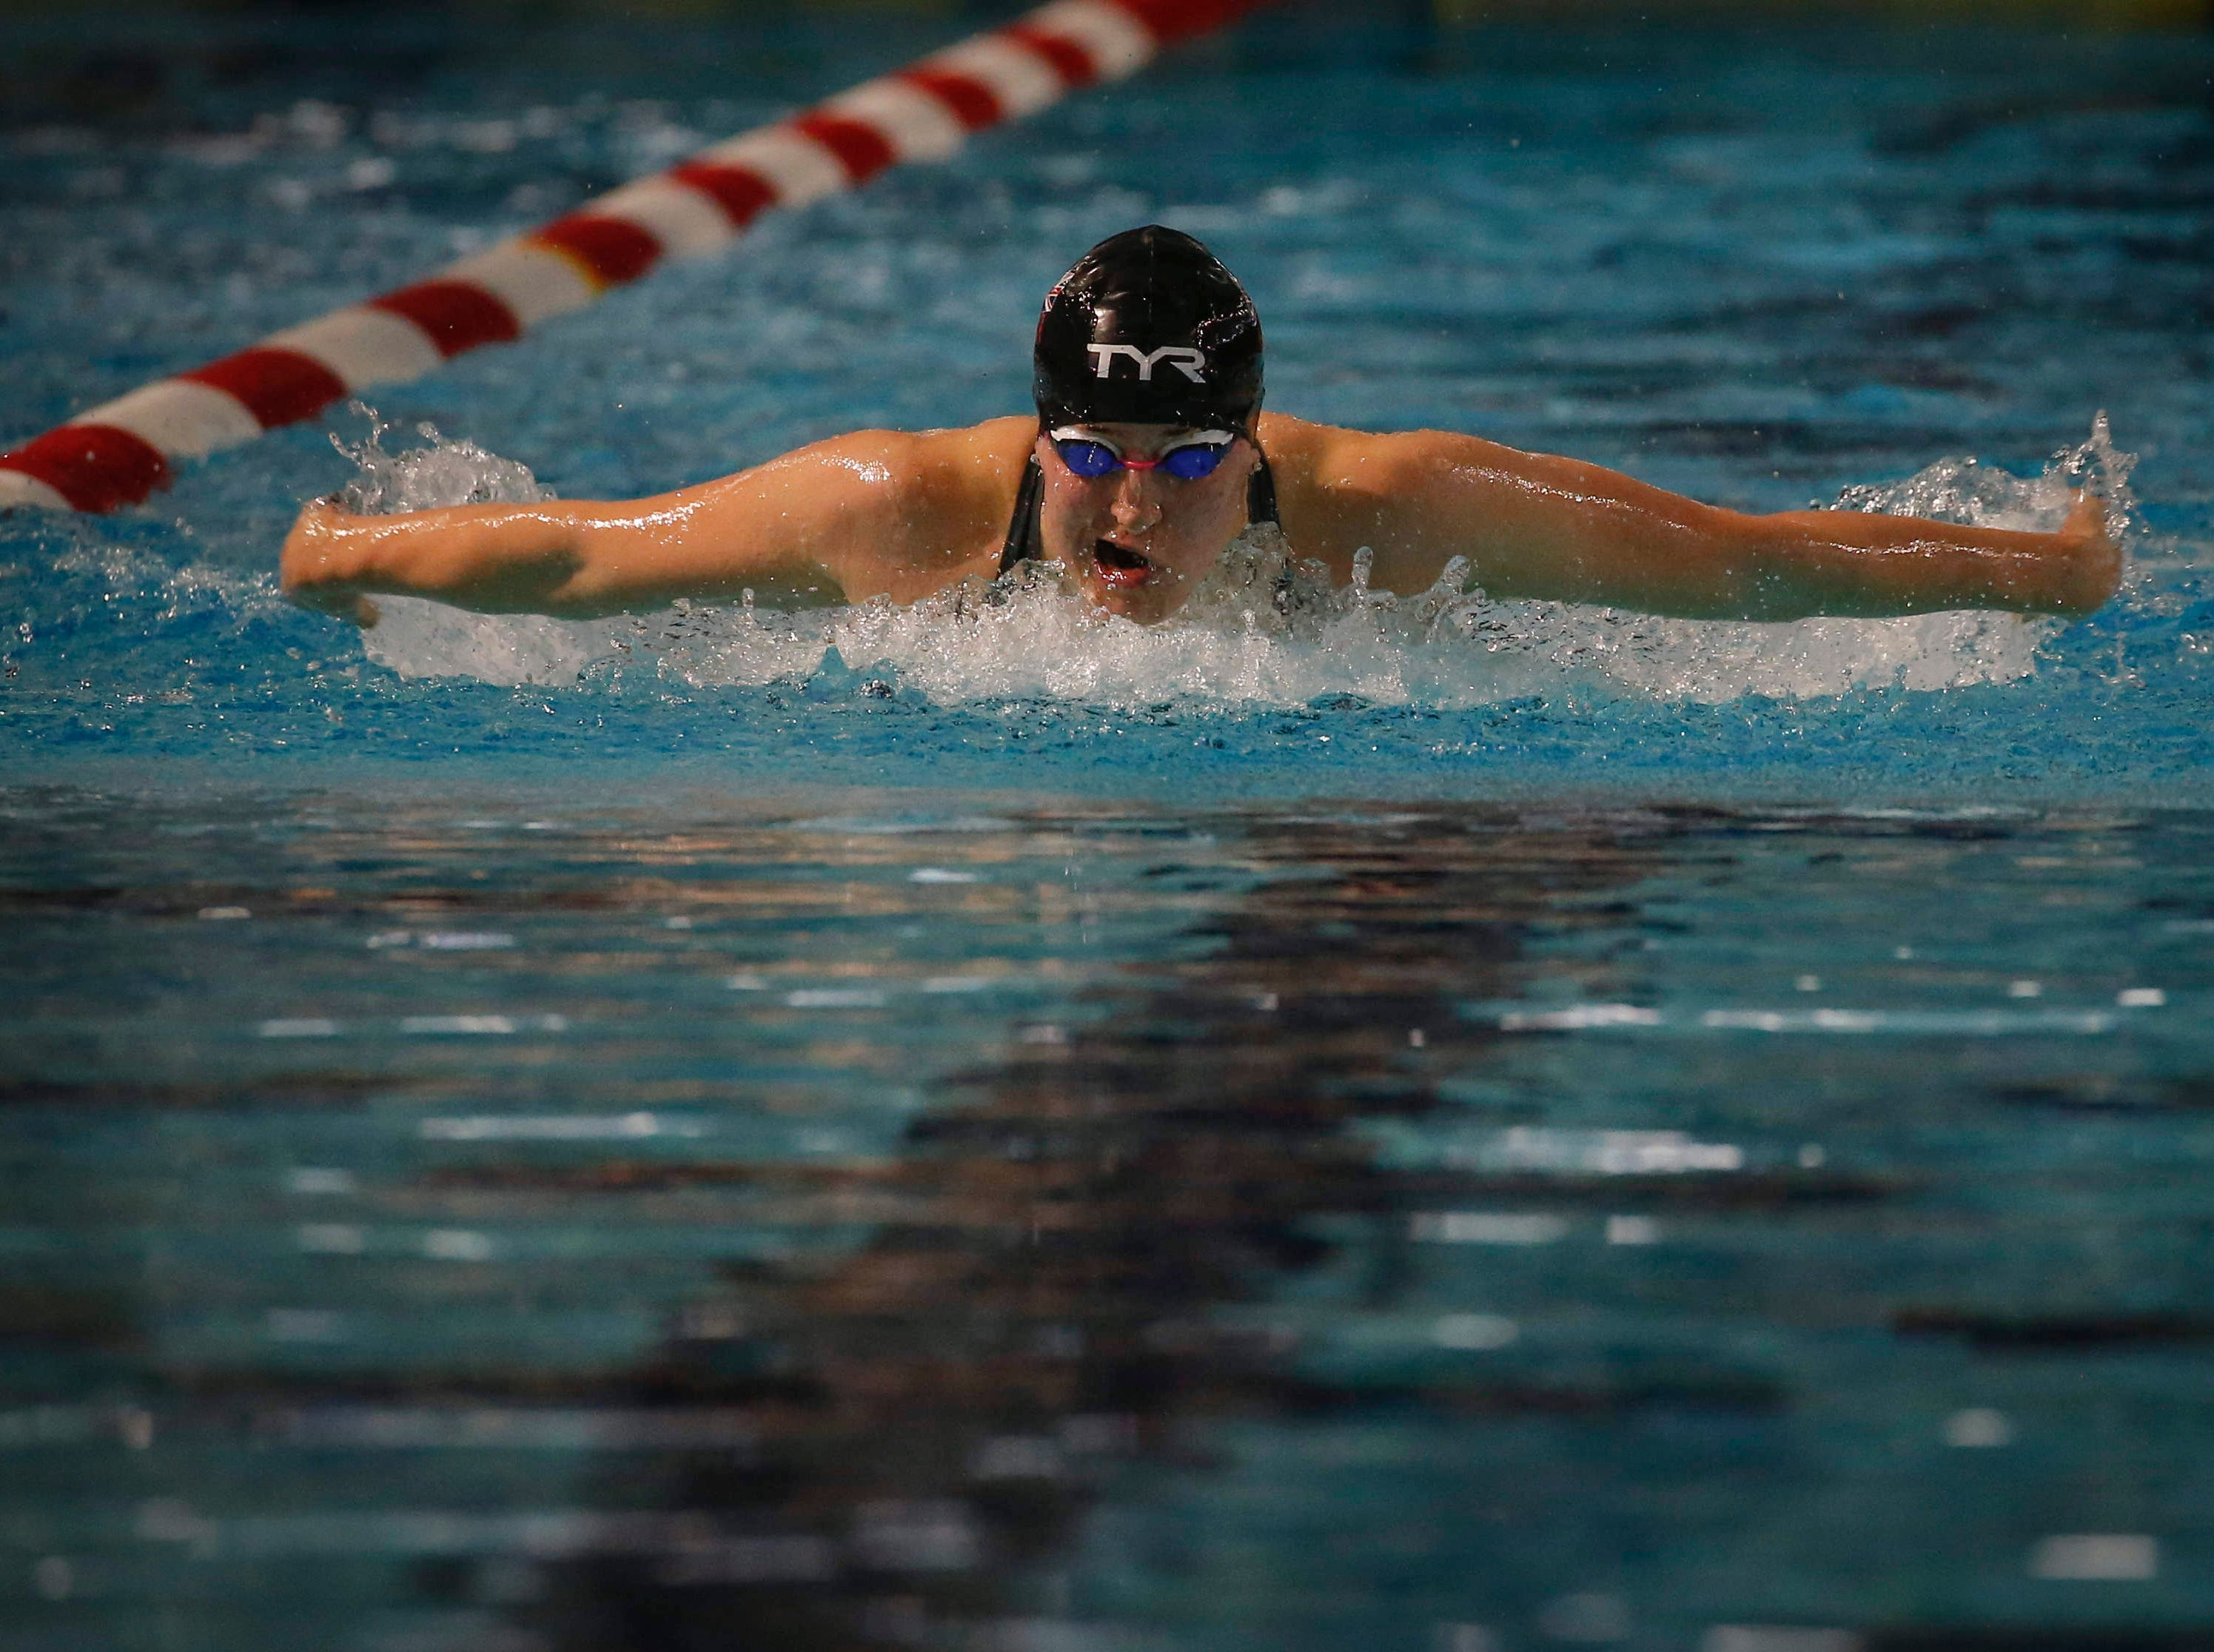 Charlotte Atkinson of Loughborough, England, competes in the 200-meter butterfly during the 2019 TYR Pro Swim Series on Thursday, March 7, 2019, at the downtown YMCA pool in Des Moines.